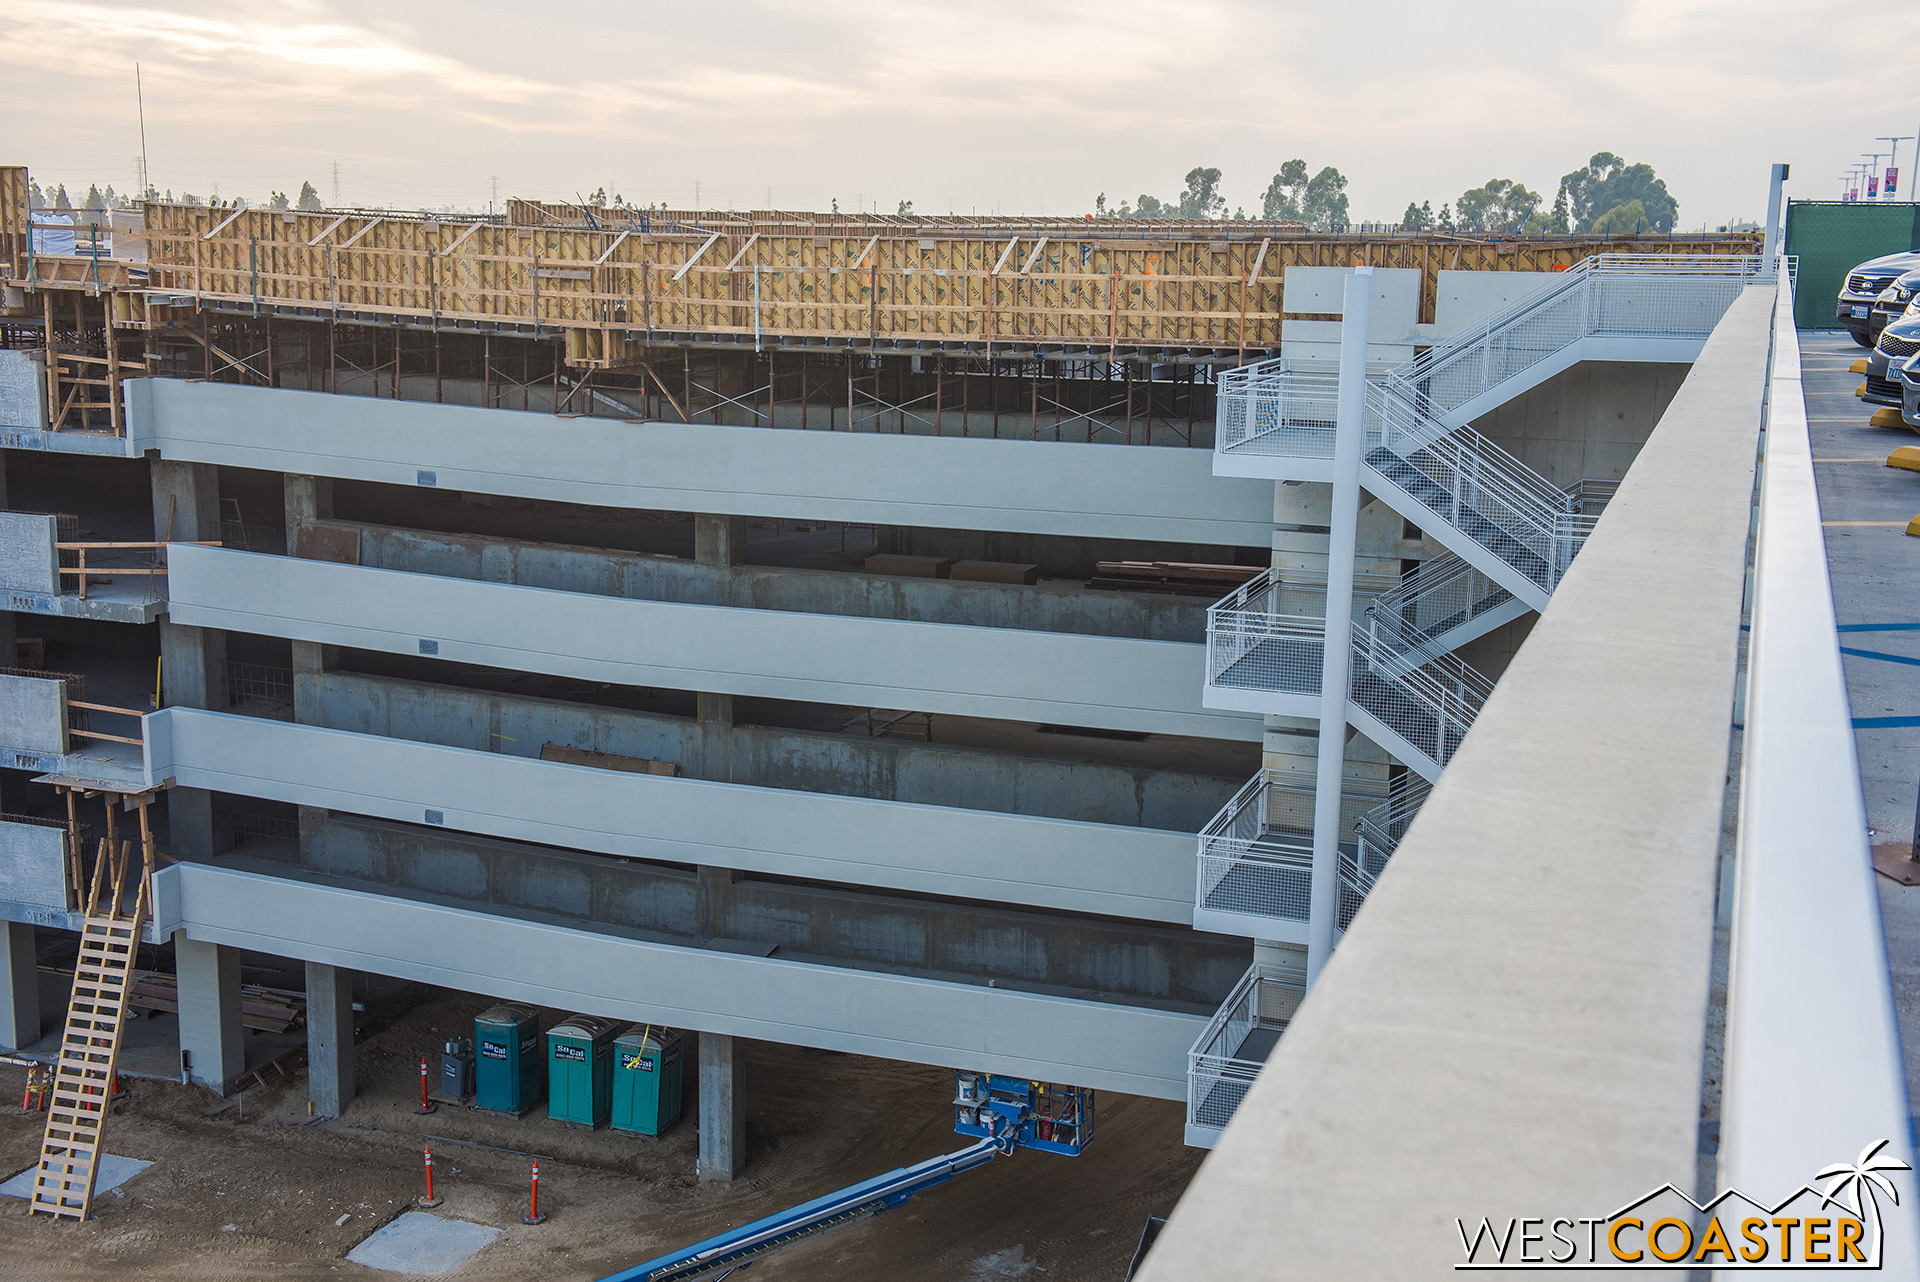 Here's one of the two bridges between the new structure and the current one.